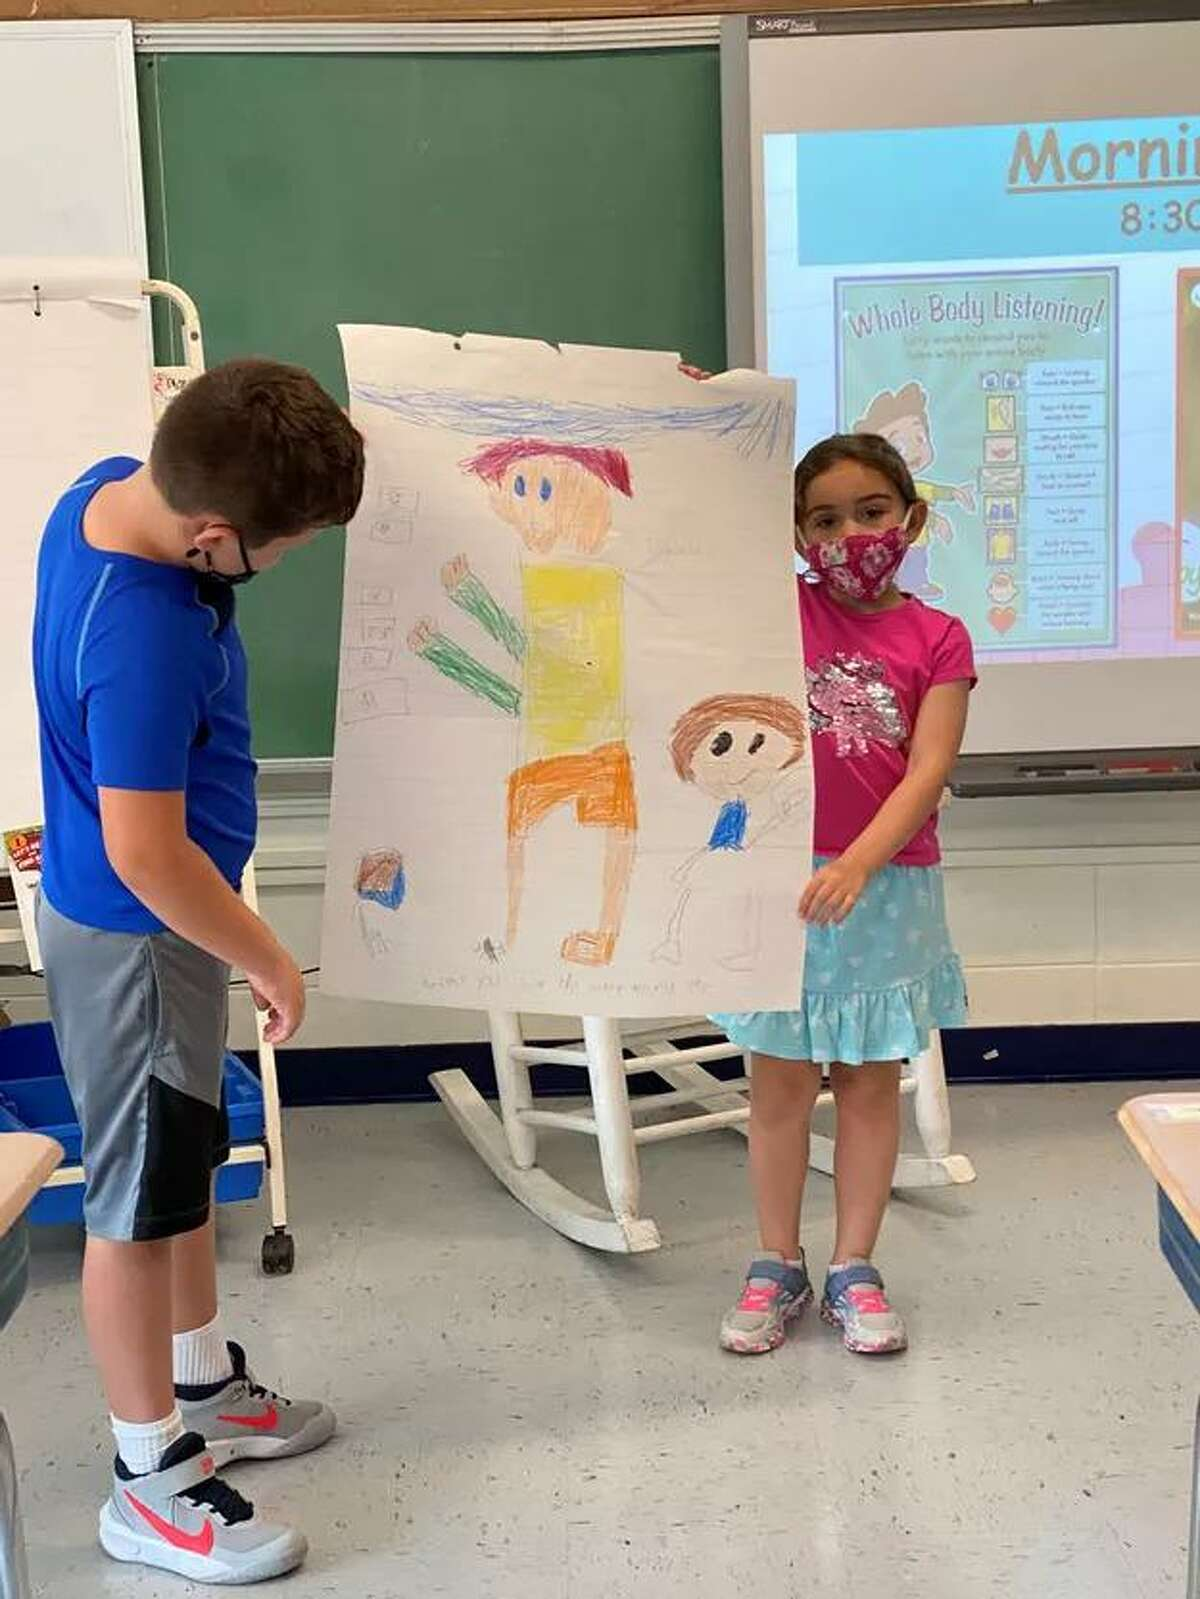 Students working on their projects during Fairfield's 2021 Summer Boost Program in July